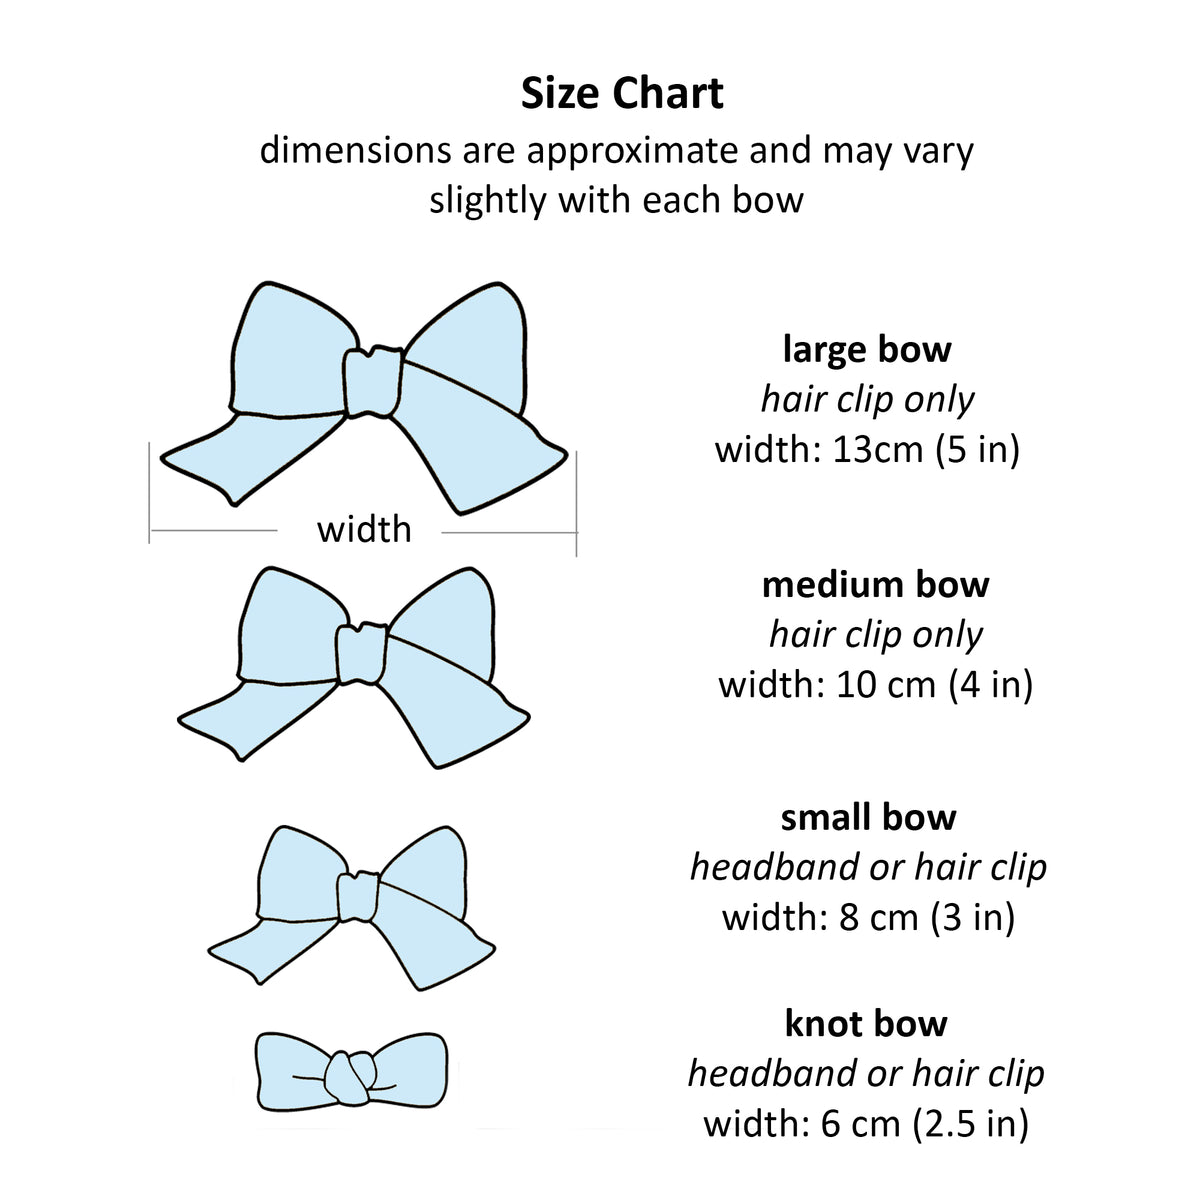 Bow graphic size chart .